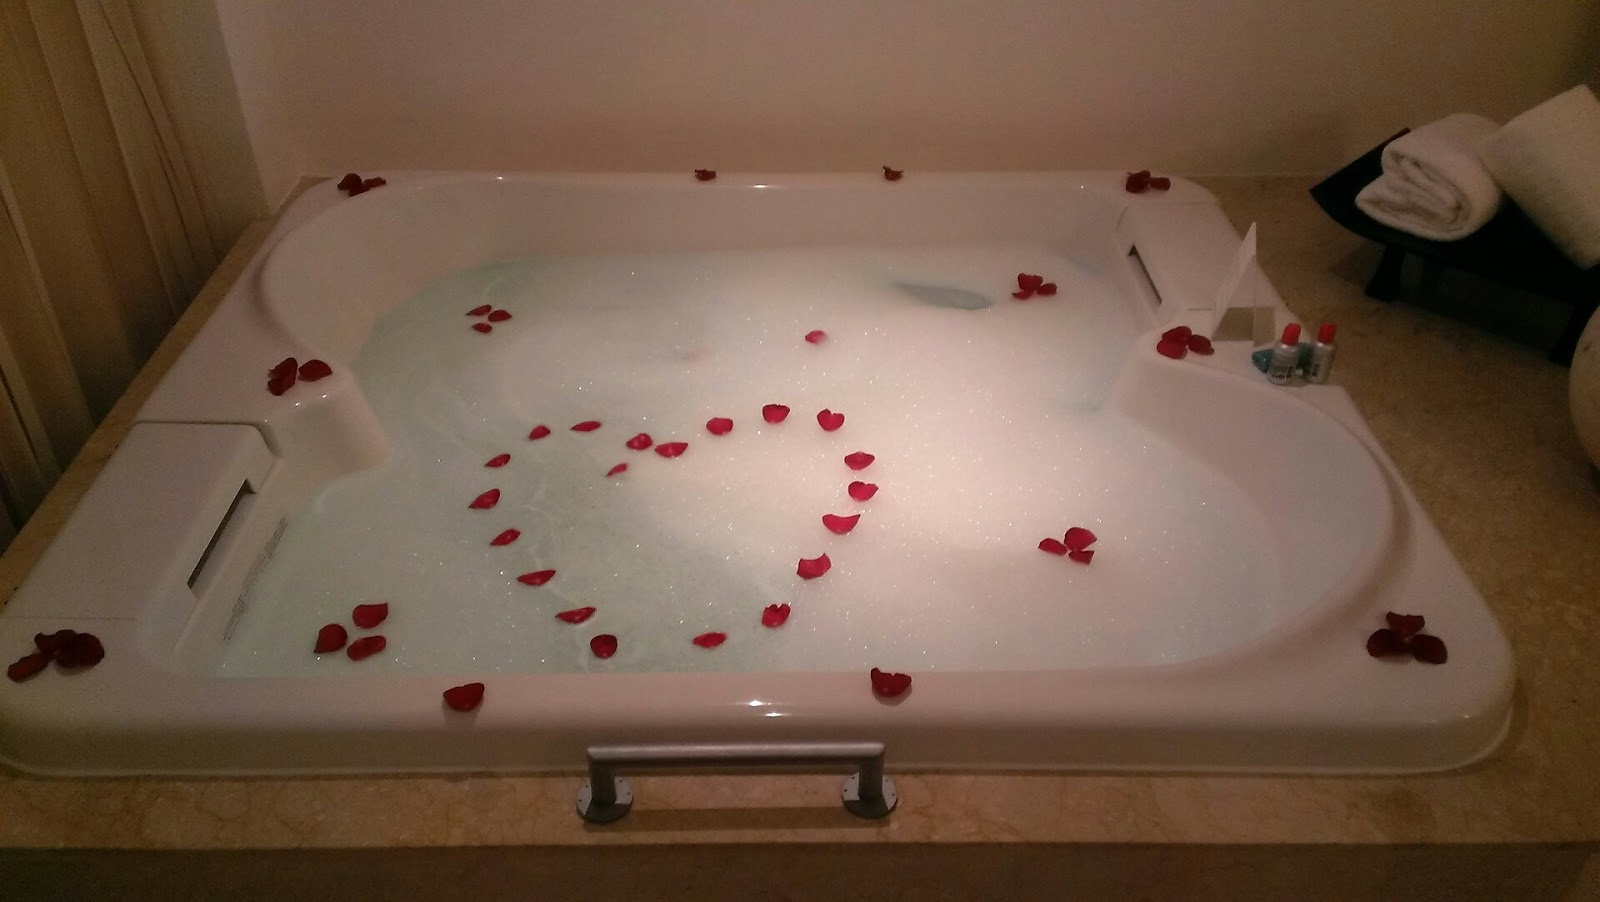 filled hot tub with rose petals in shape of hear